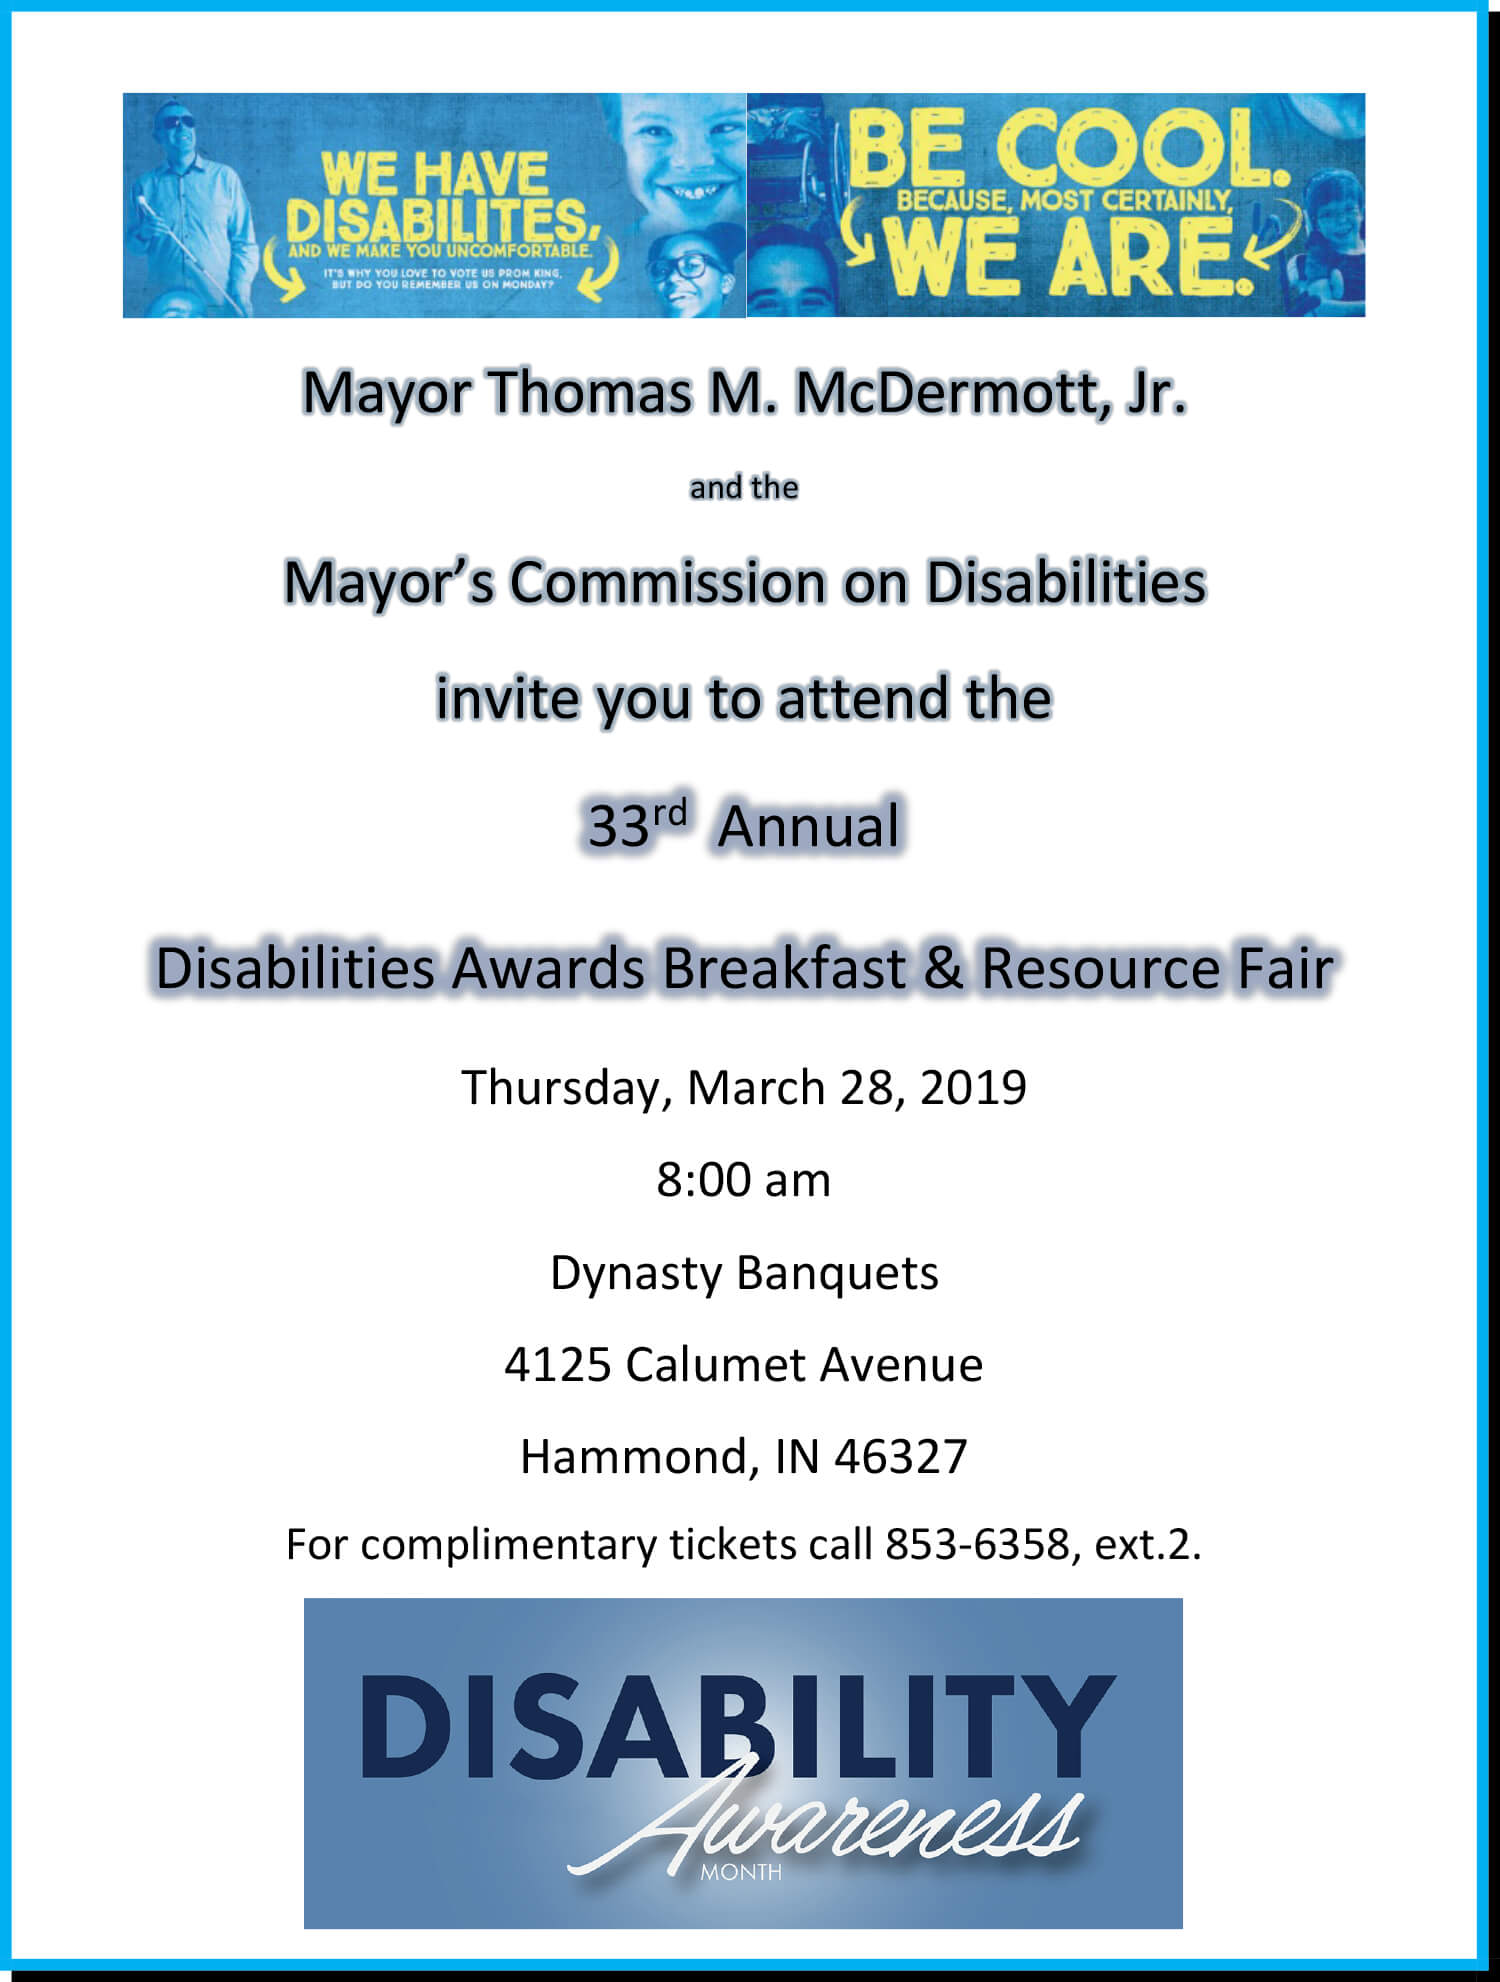 33rdAnnual Disabilities Awards Breakfast